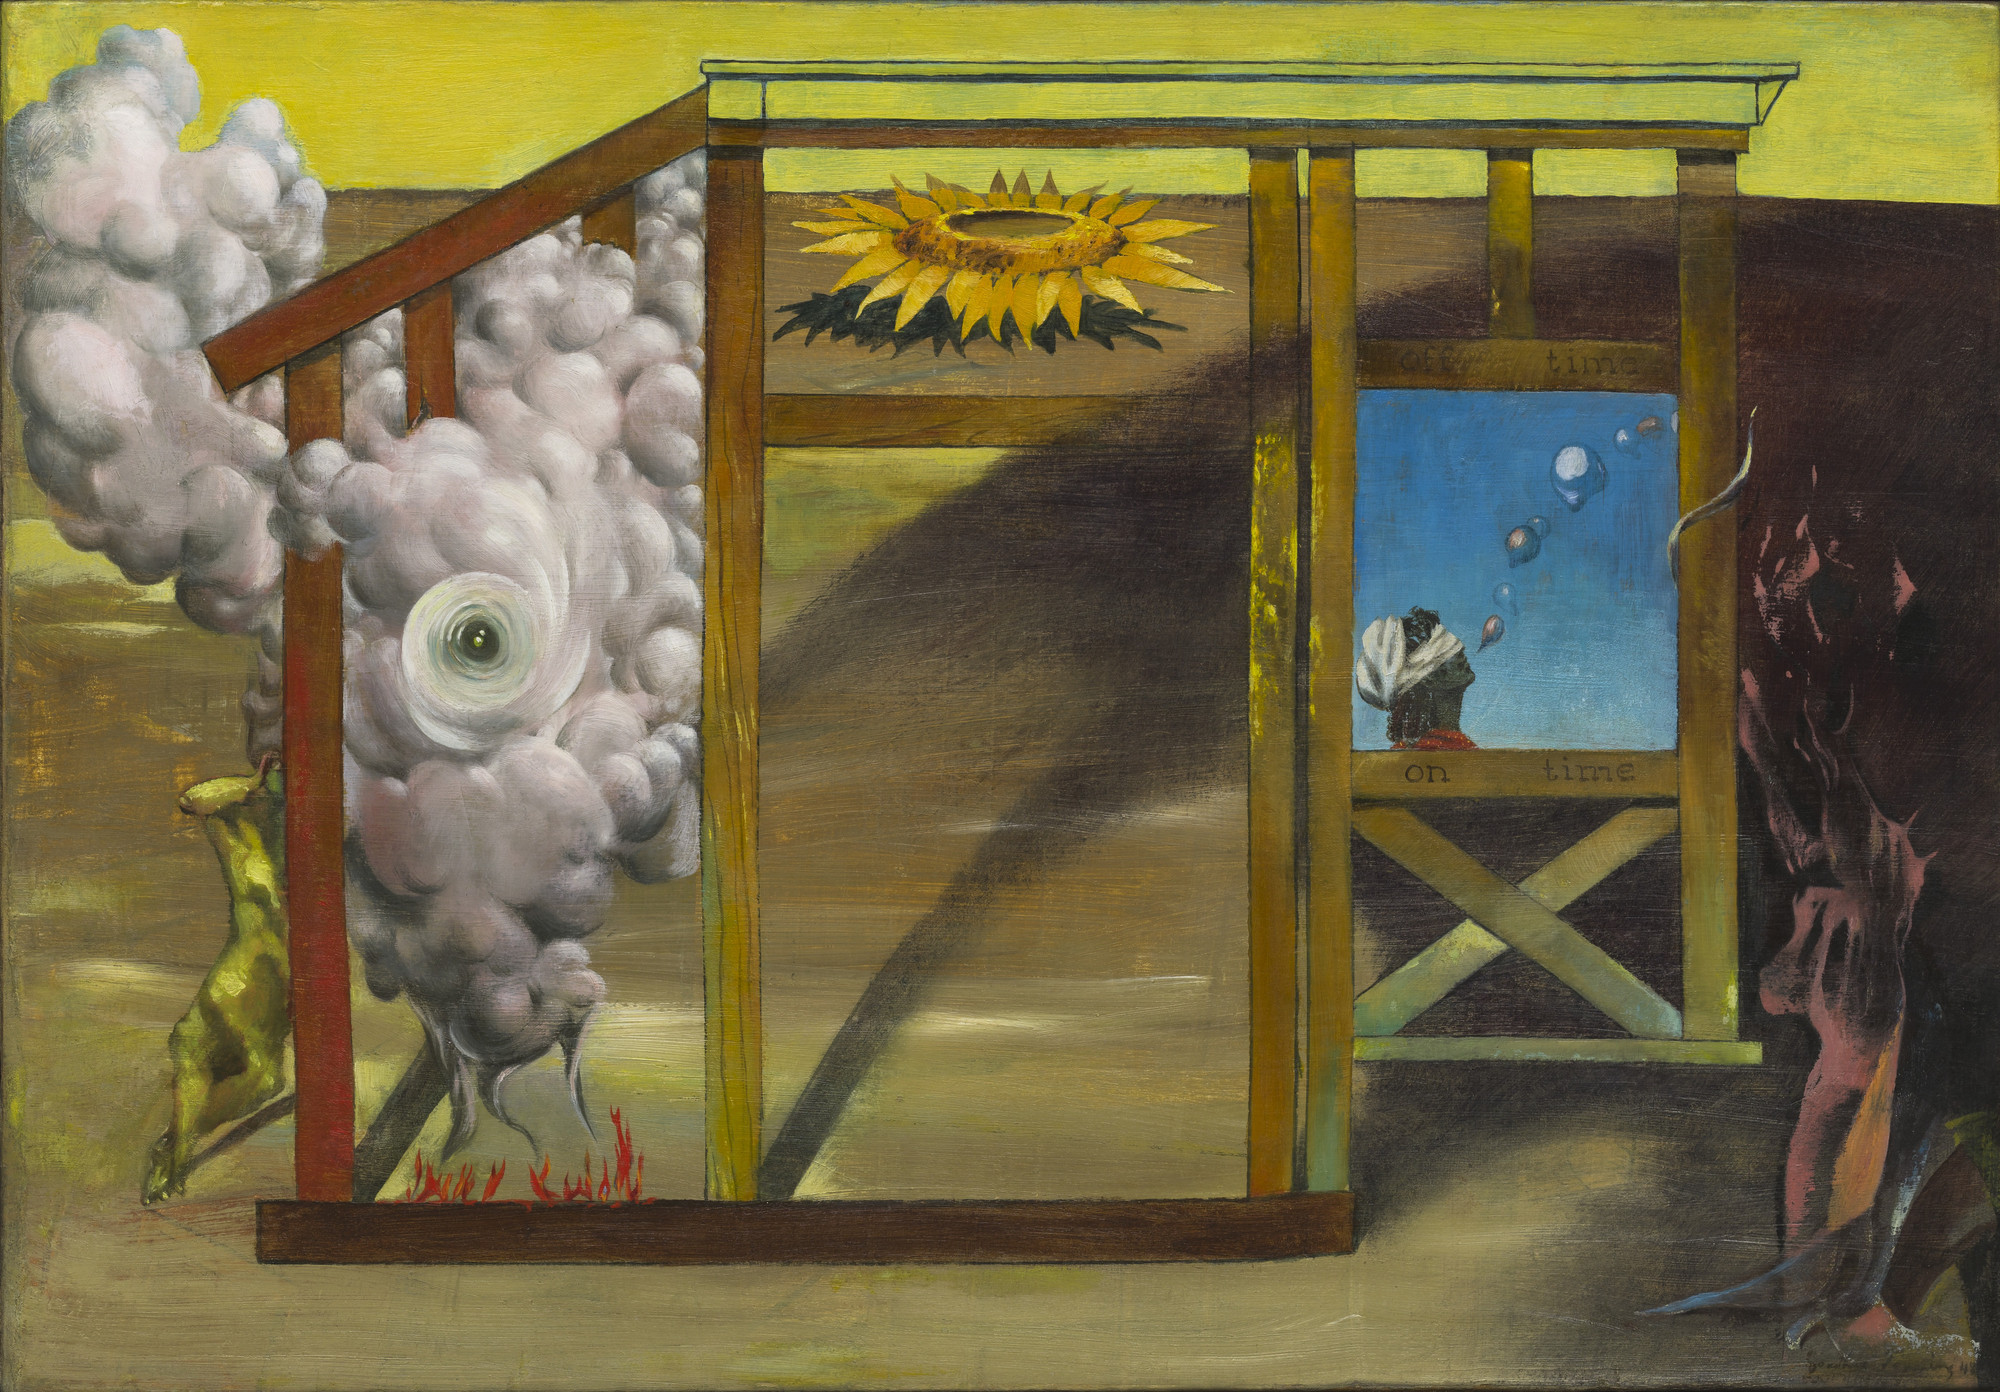 Dorothea Tanning. On Time Off Time. 1948